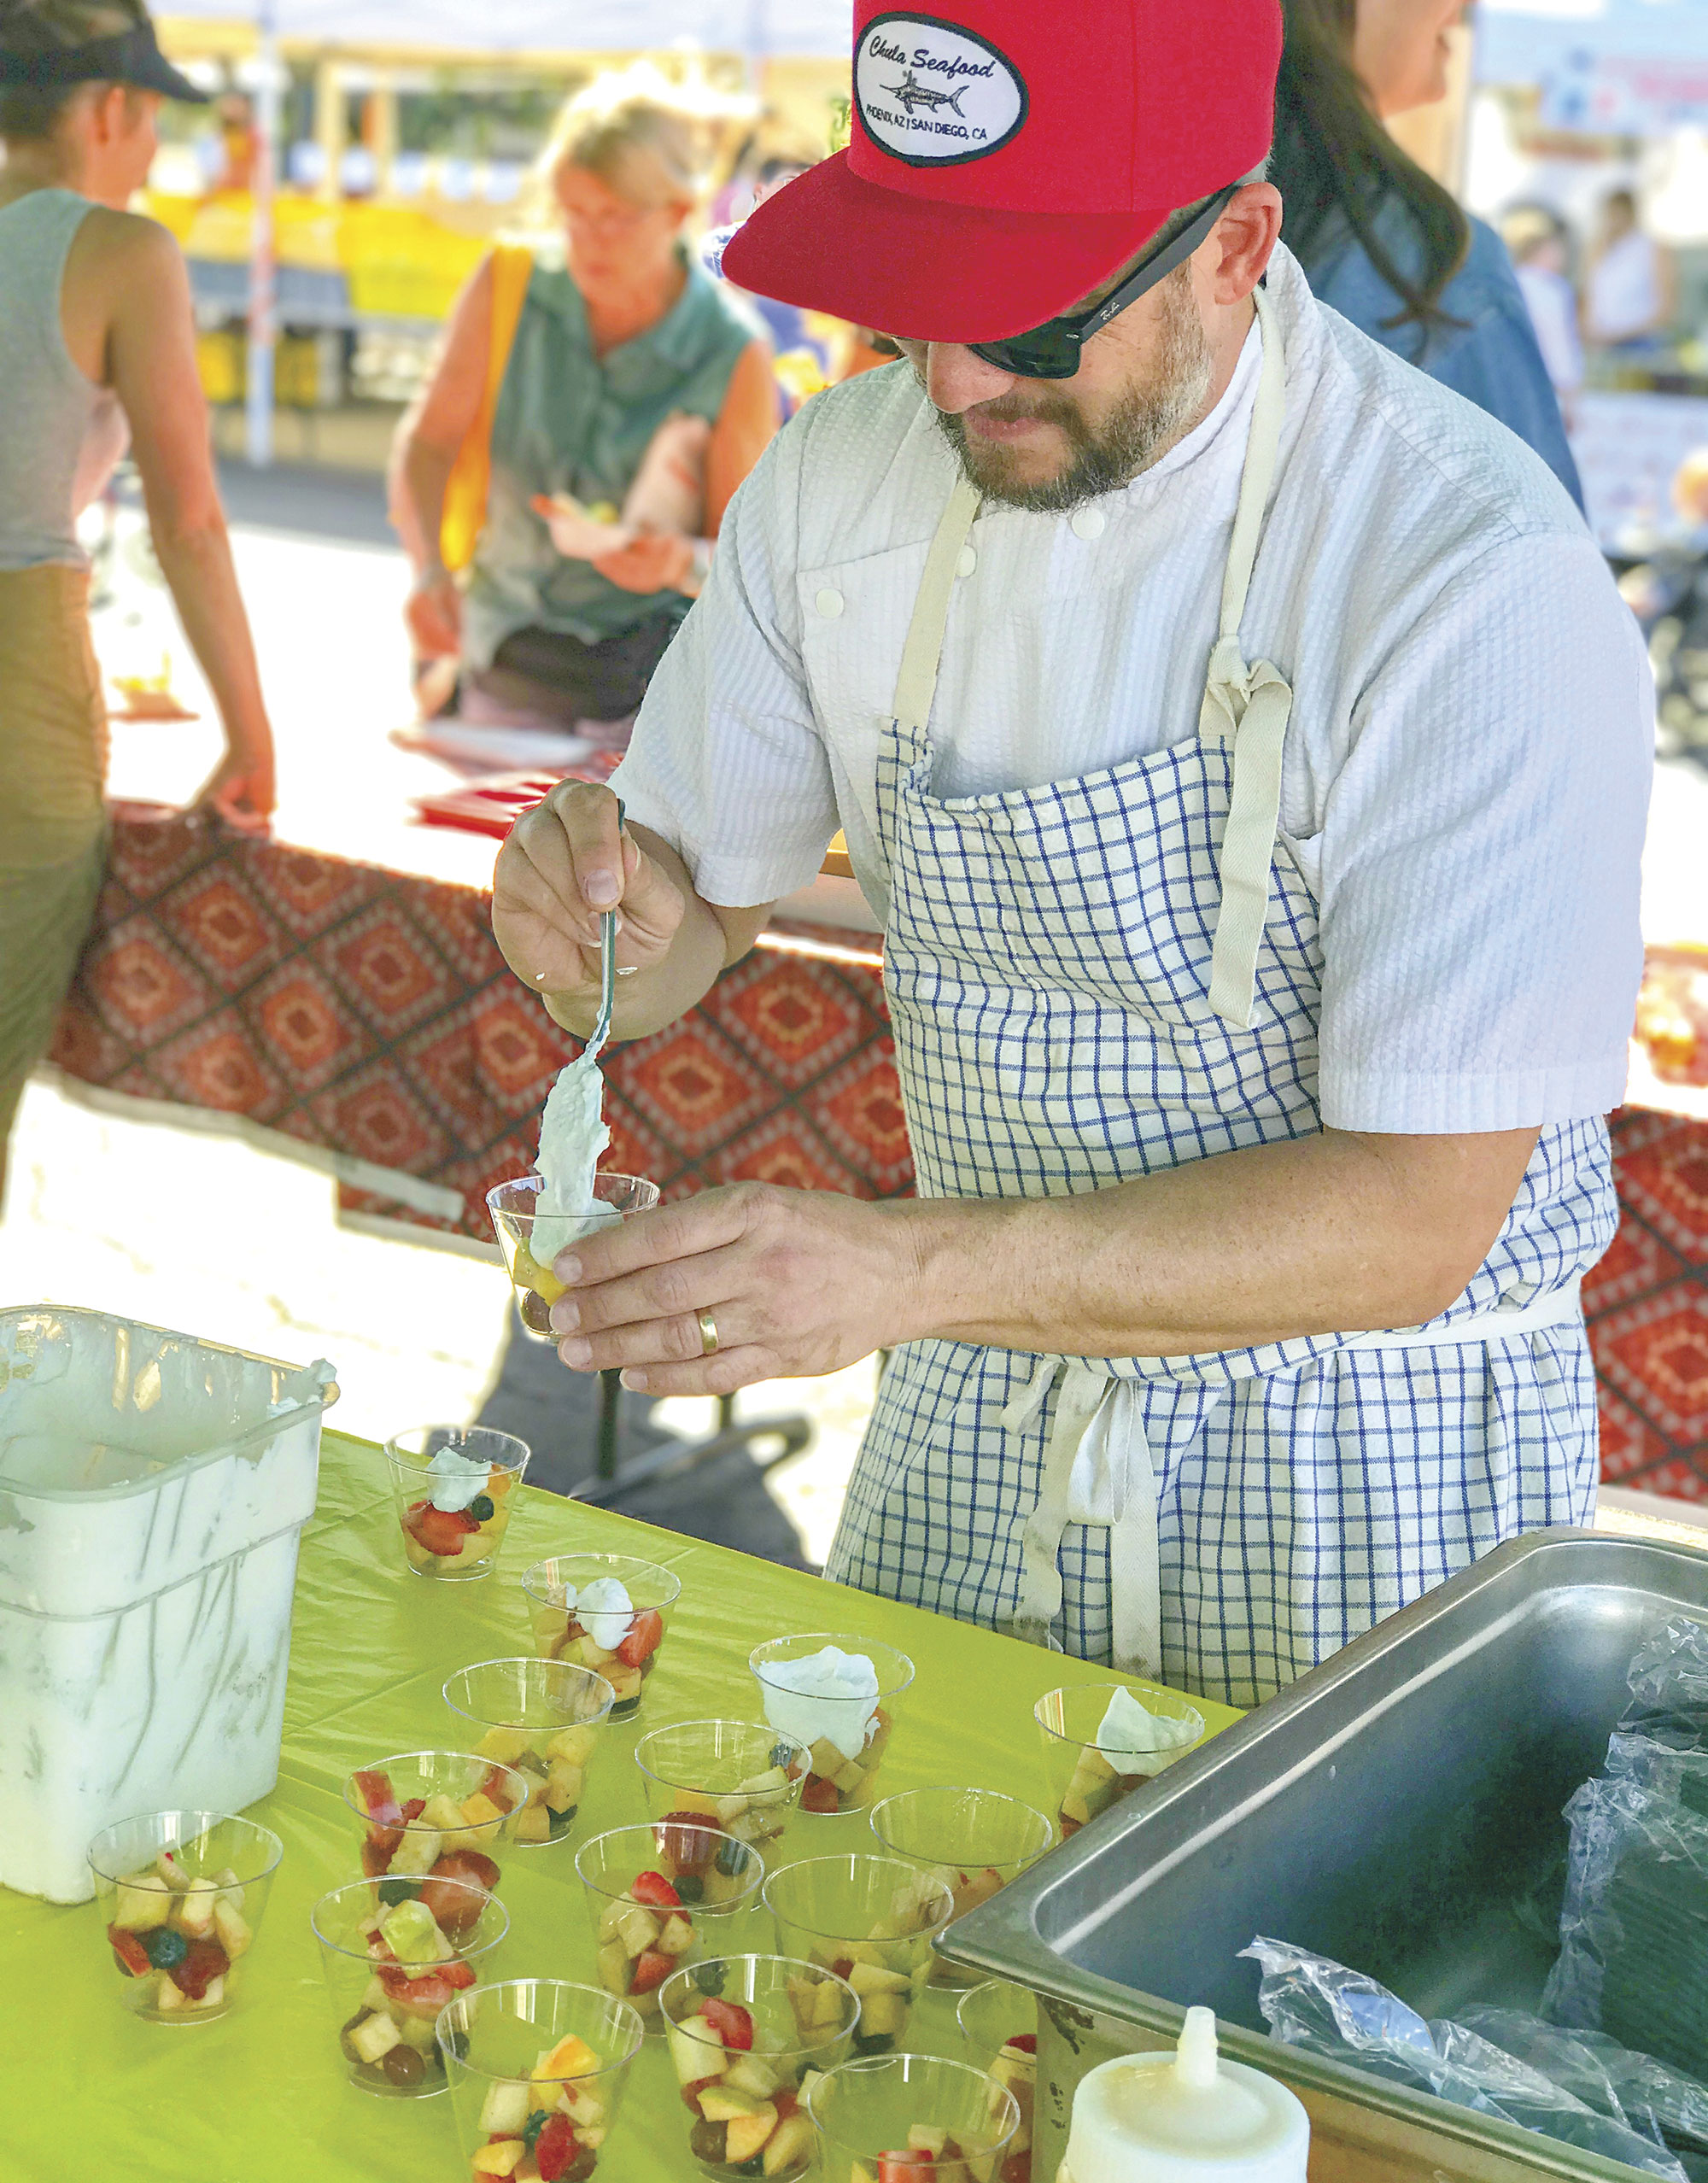 Chef Doug Robson does a culinary demo at Uptown Farmers Market; Photo courtesy Uptown Farmers Market